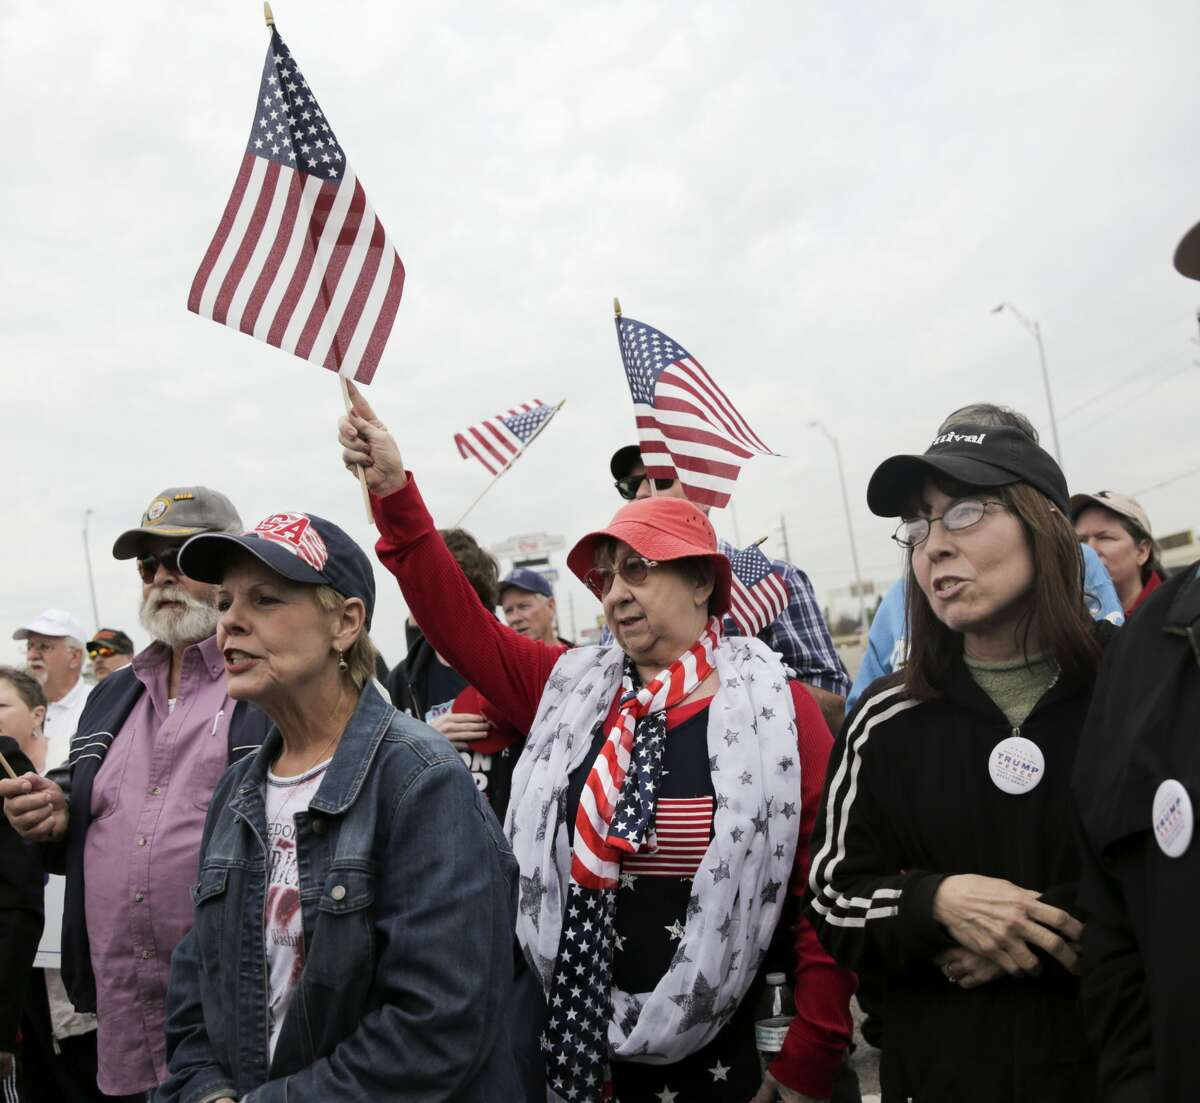 Jo Anne Henry of Yorktown, Texas listens during a rally in support of the President Trump on Saturday, March 4, 2017, in Katy. ( Elizabeth Conley / Houston Chronicle )